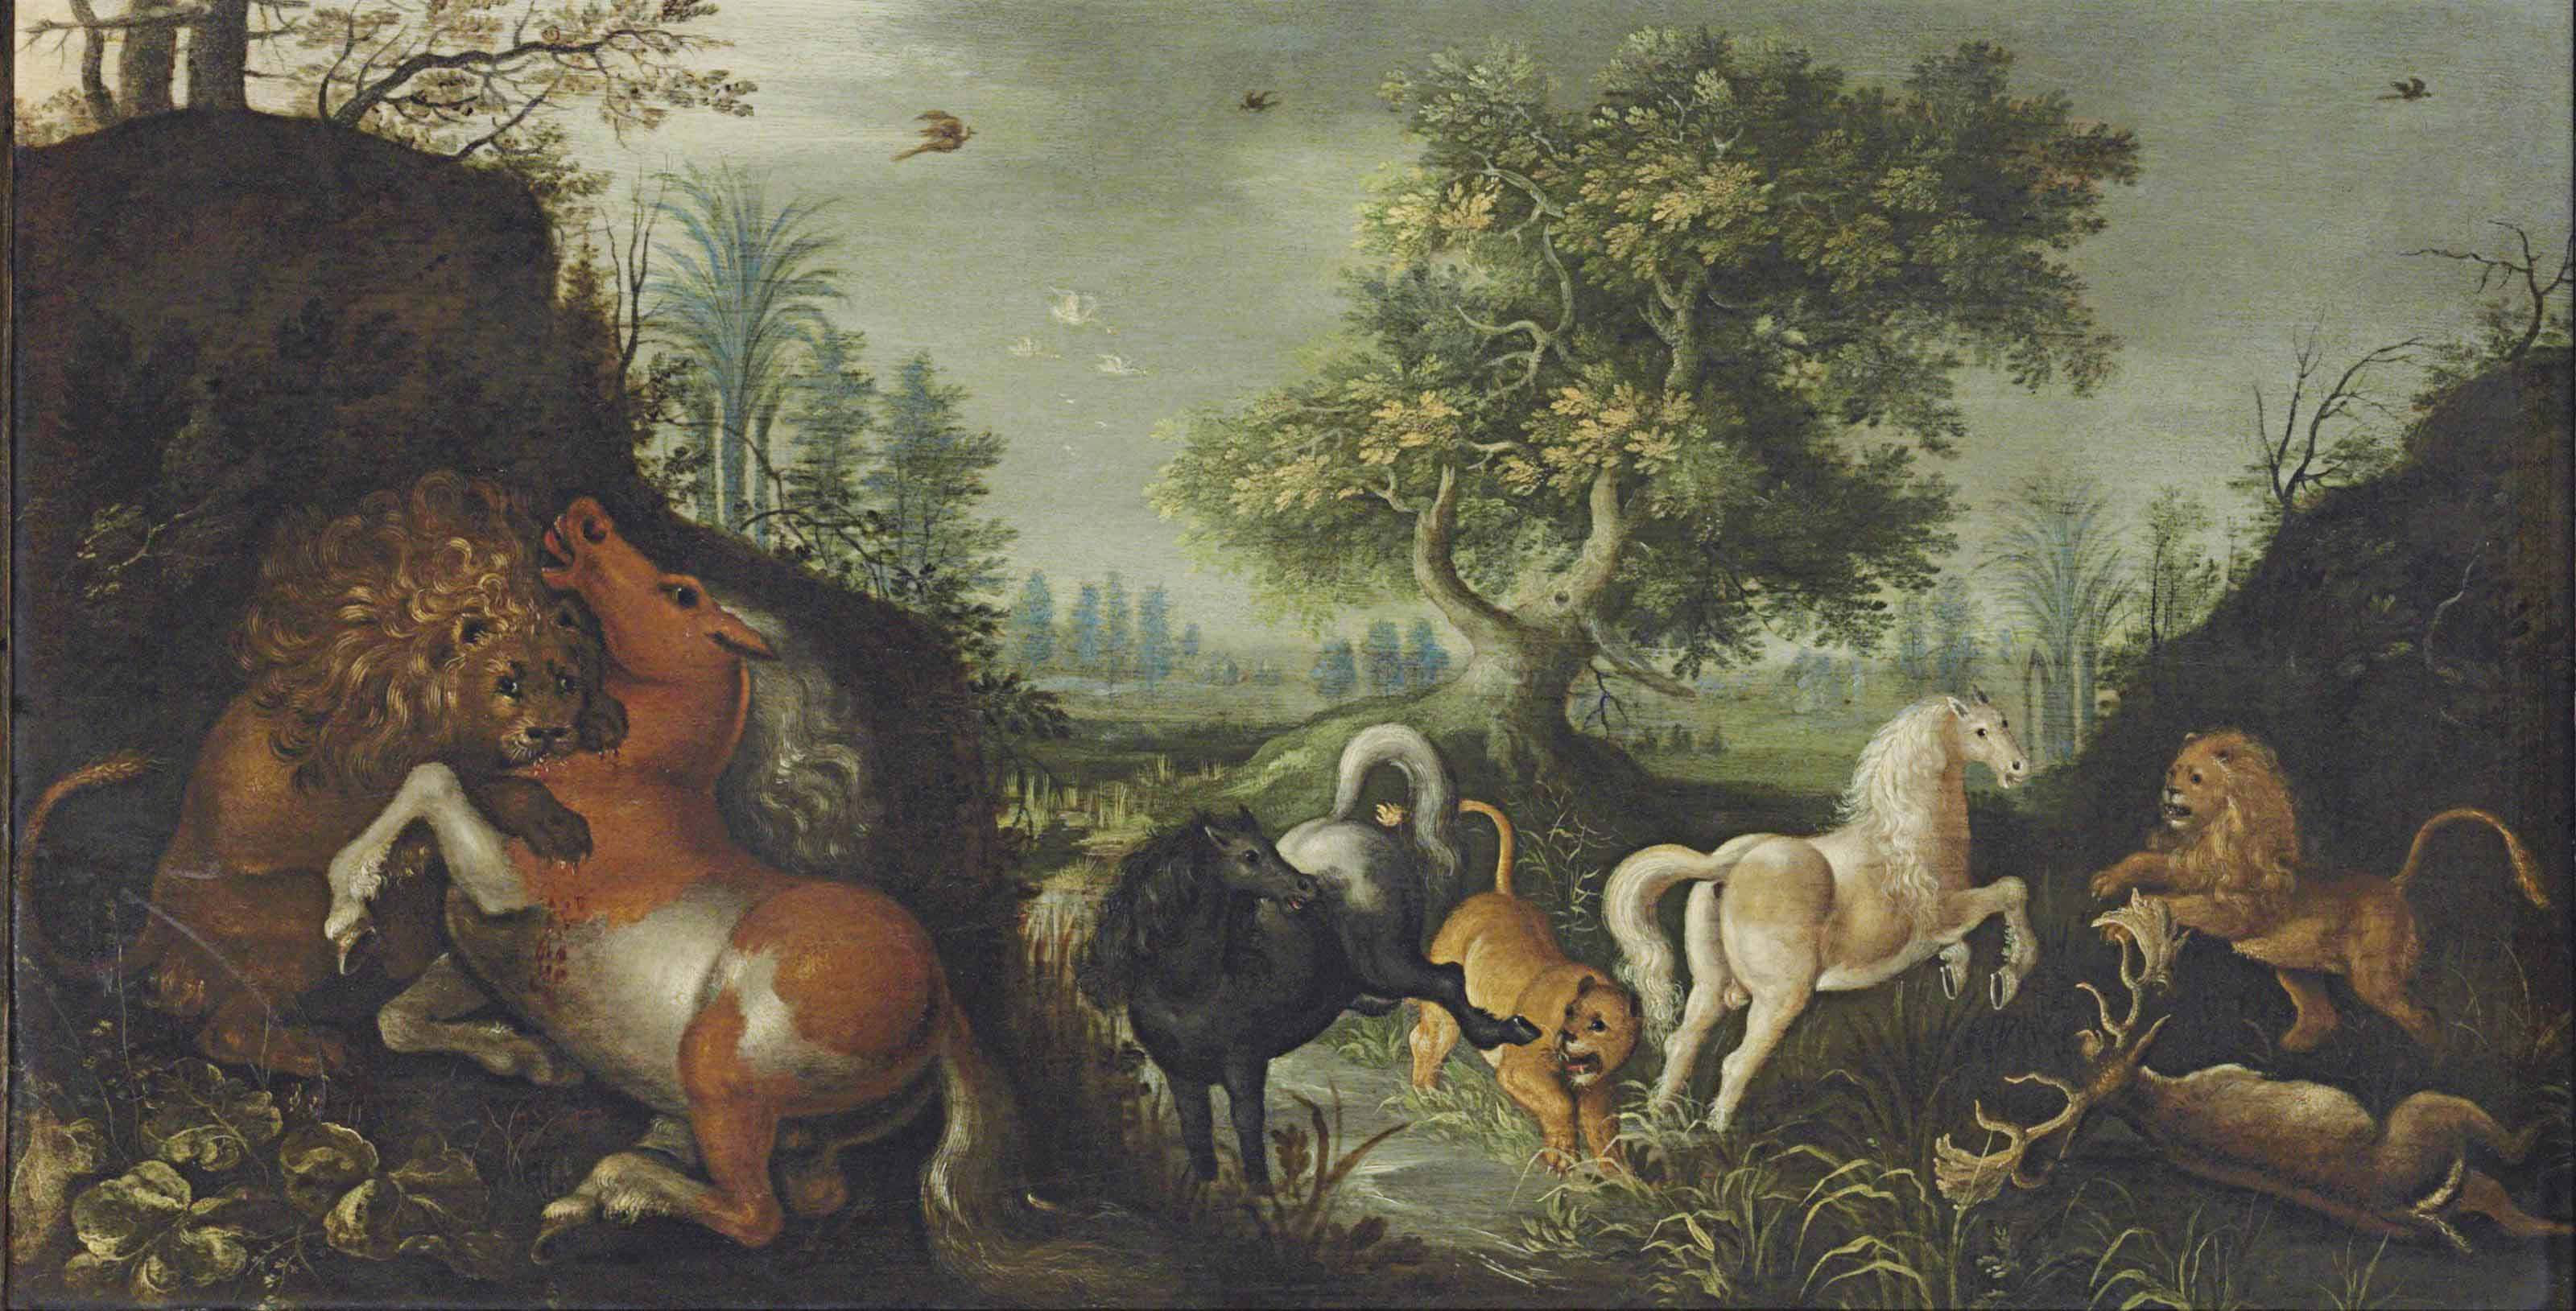 A wooded river landscape with lions attacking horses